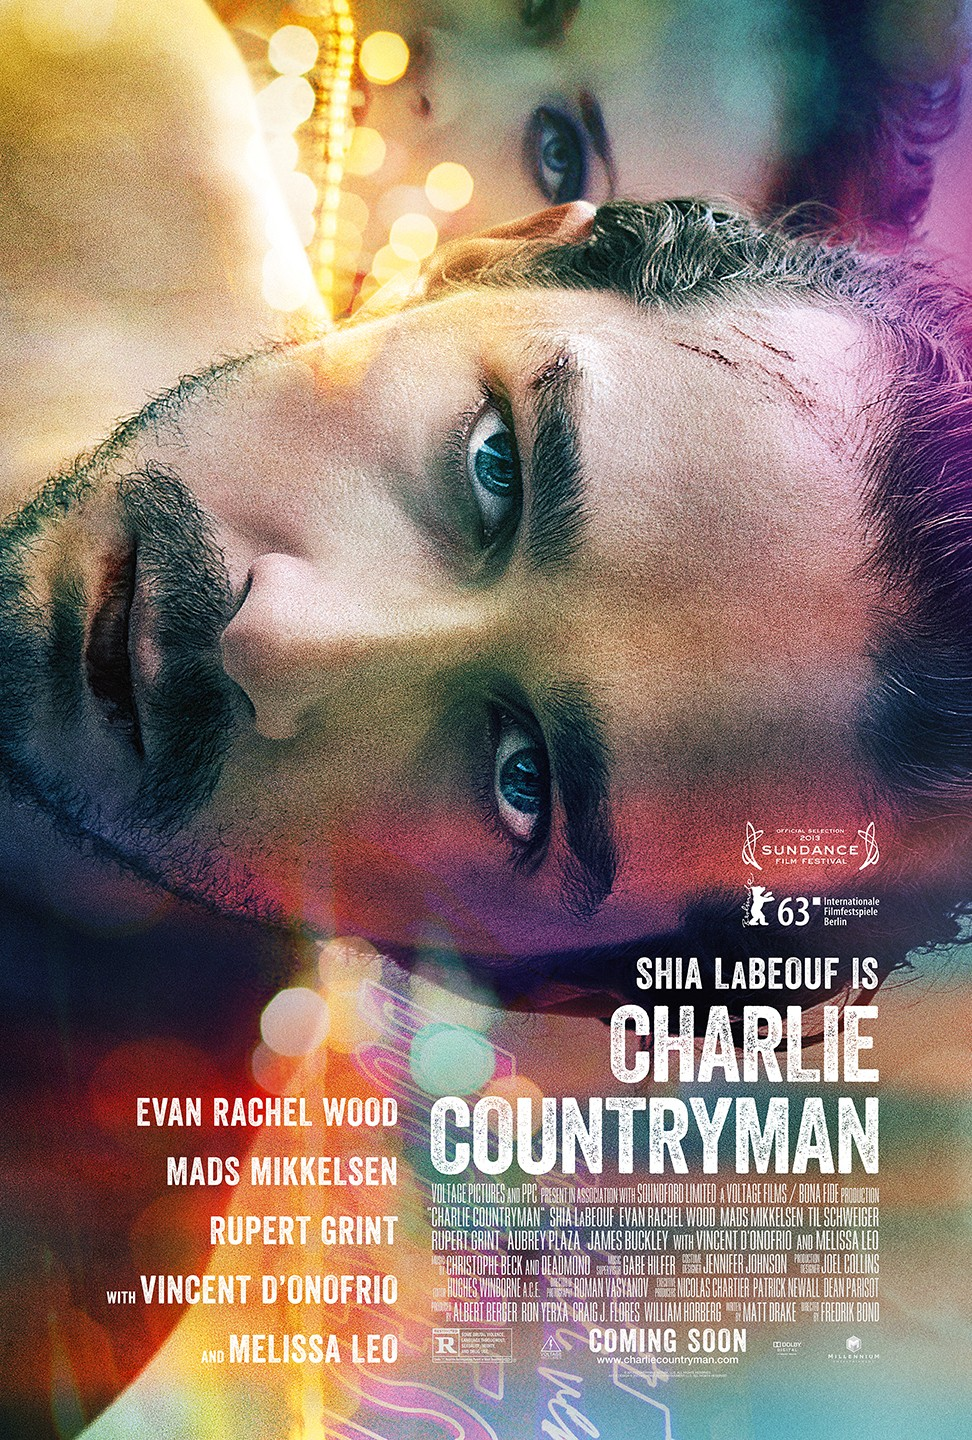 The Necessary Death of Charlie Countryman-Official Poster Banner PROMO POSTER-01OUTUBRO2013